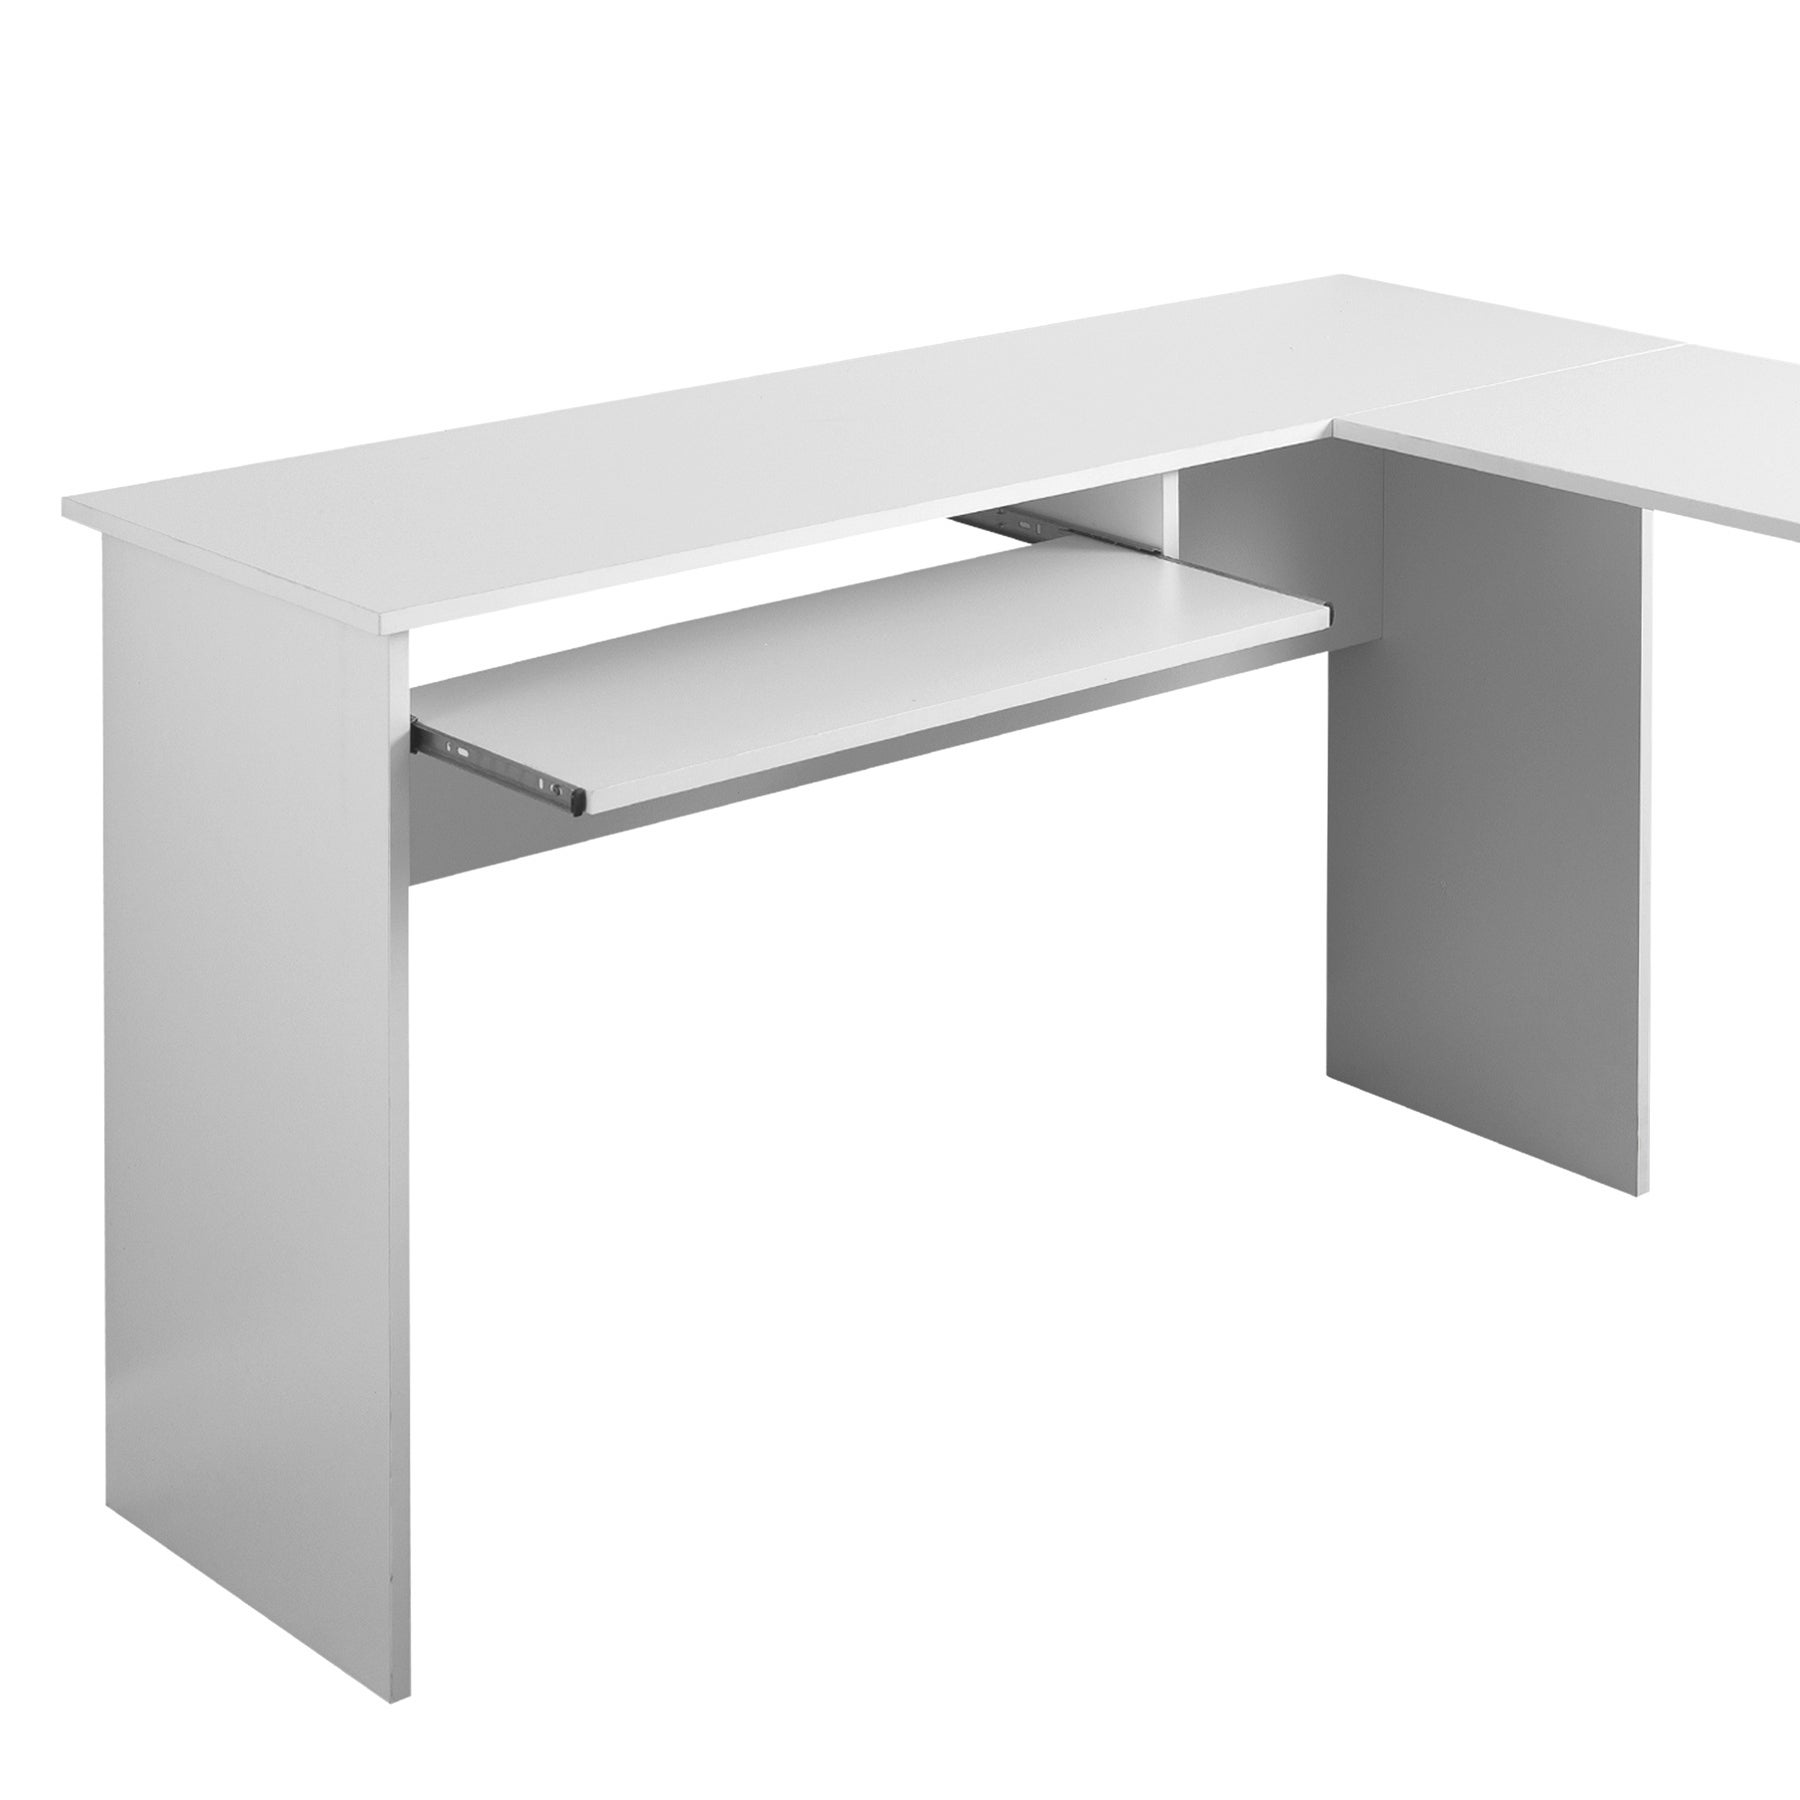 white office corner desk. Fineboard L-shaped Office Corner Desk With 2 Side Shelves - Free Shipping Today Overstock 24849095 White